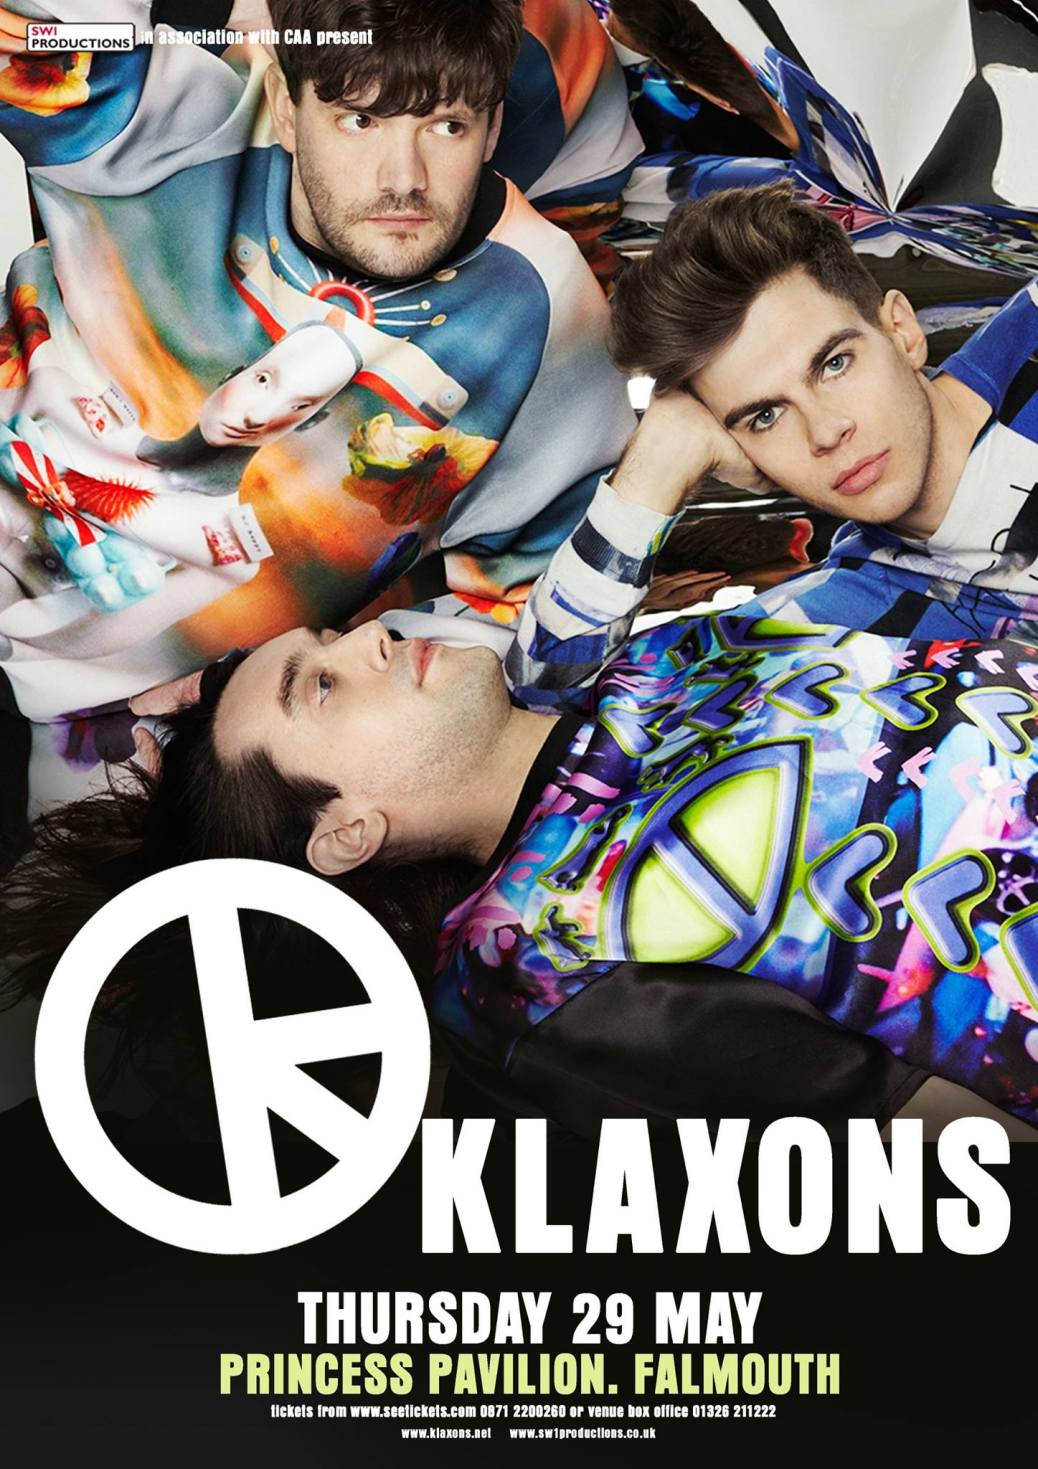 Klaxons - Princess Pavilion 29th May 2014